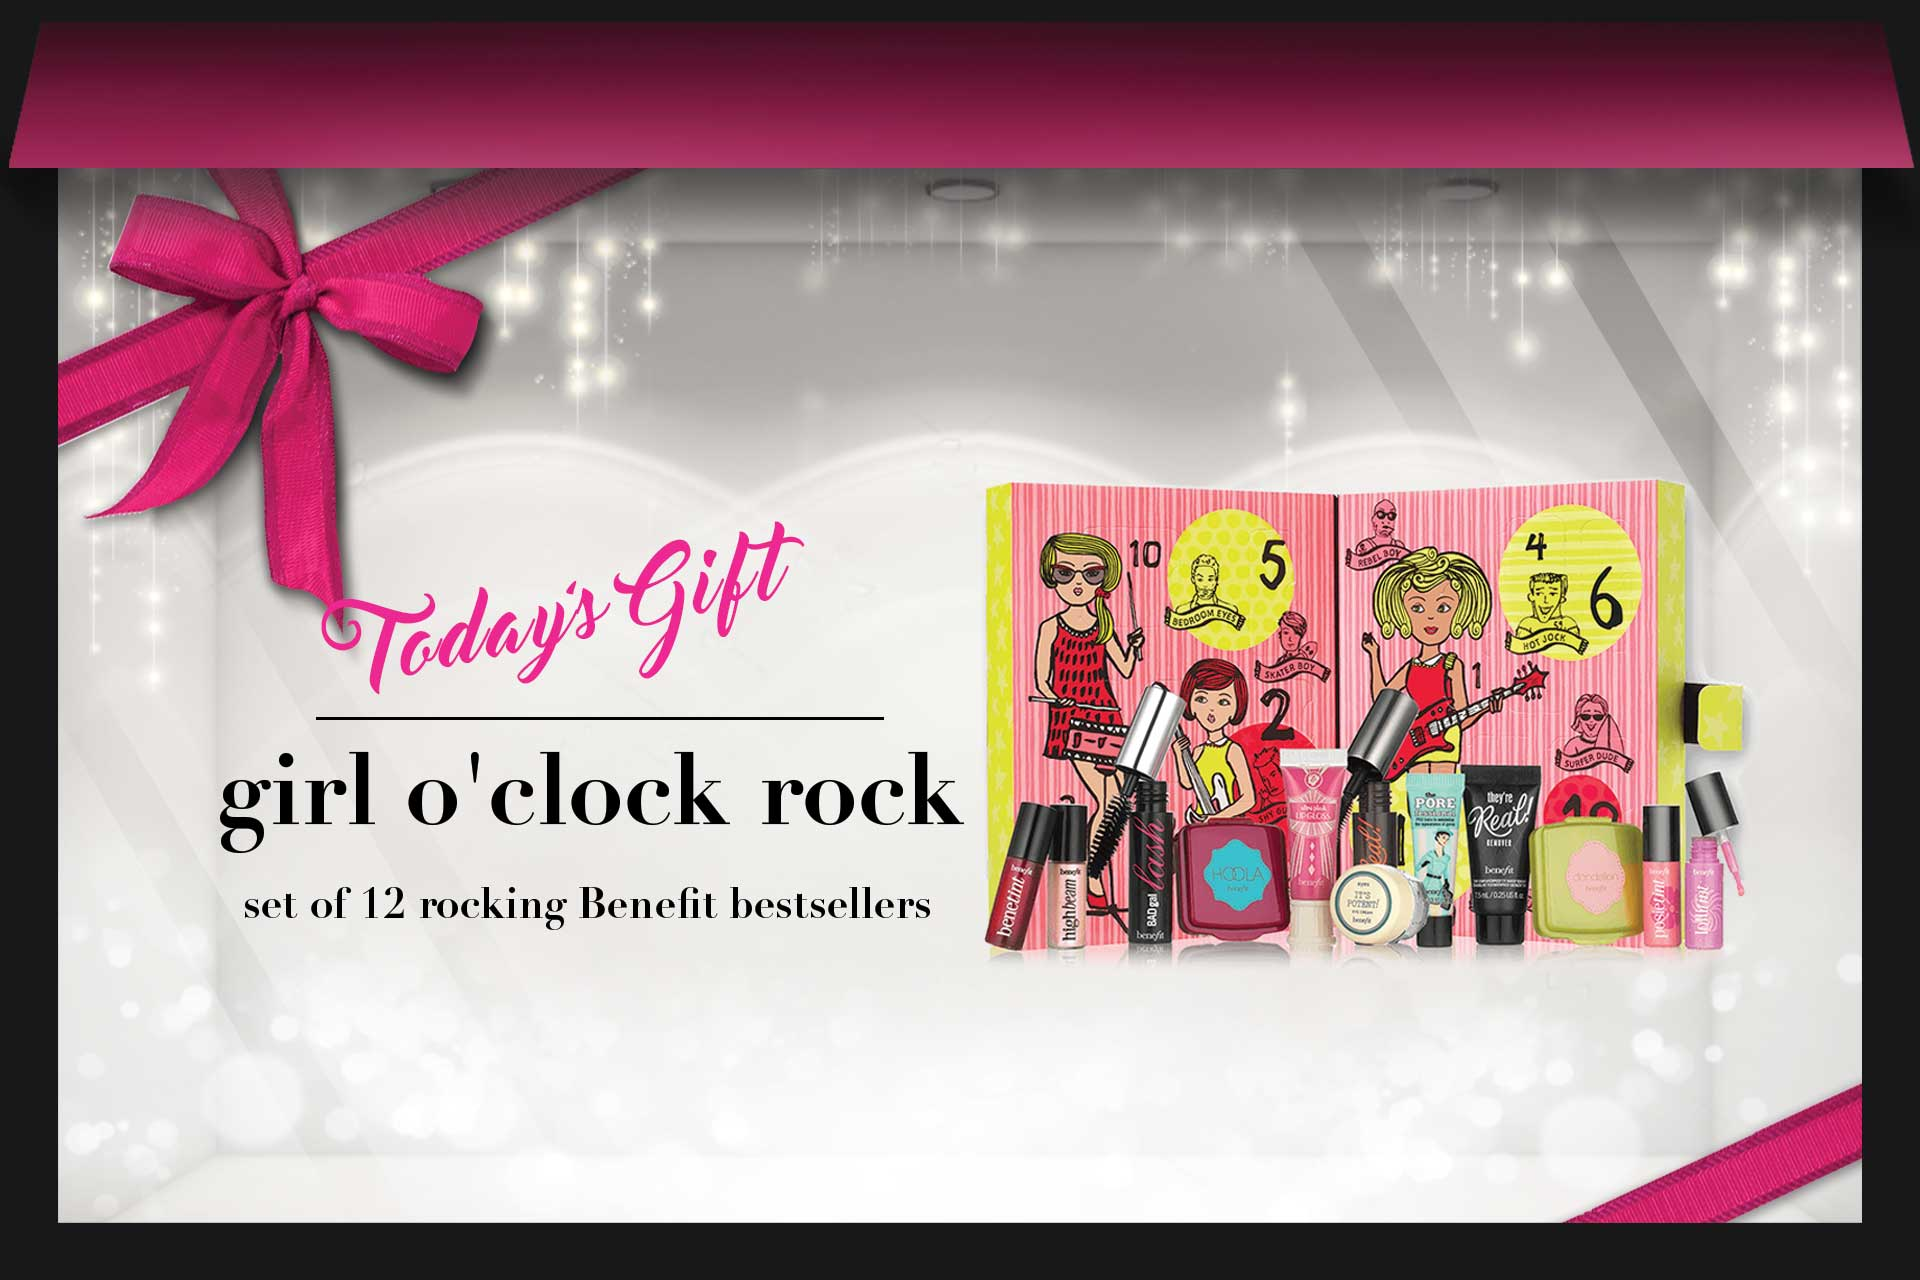 聖誕好禮:Benefit girl o'clock rock聖誕套裝